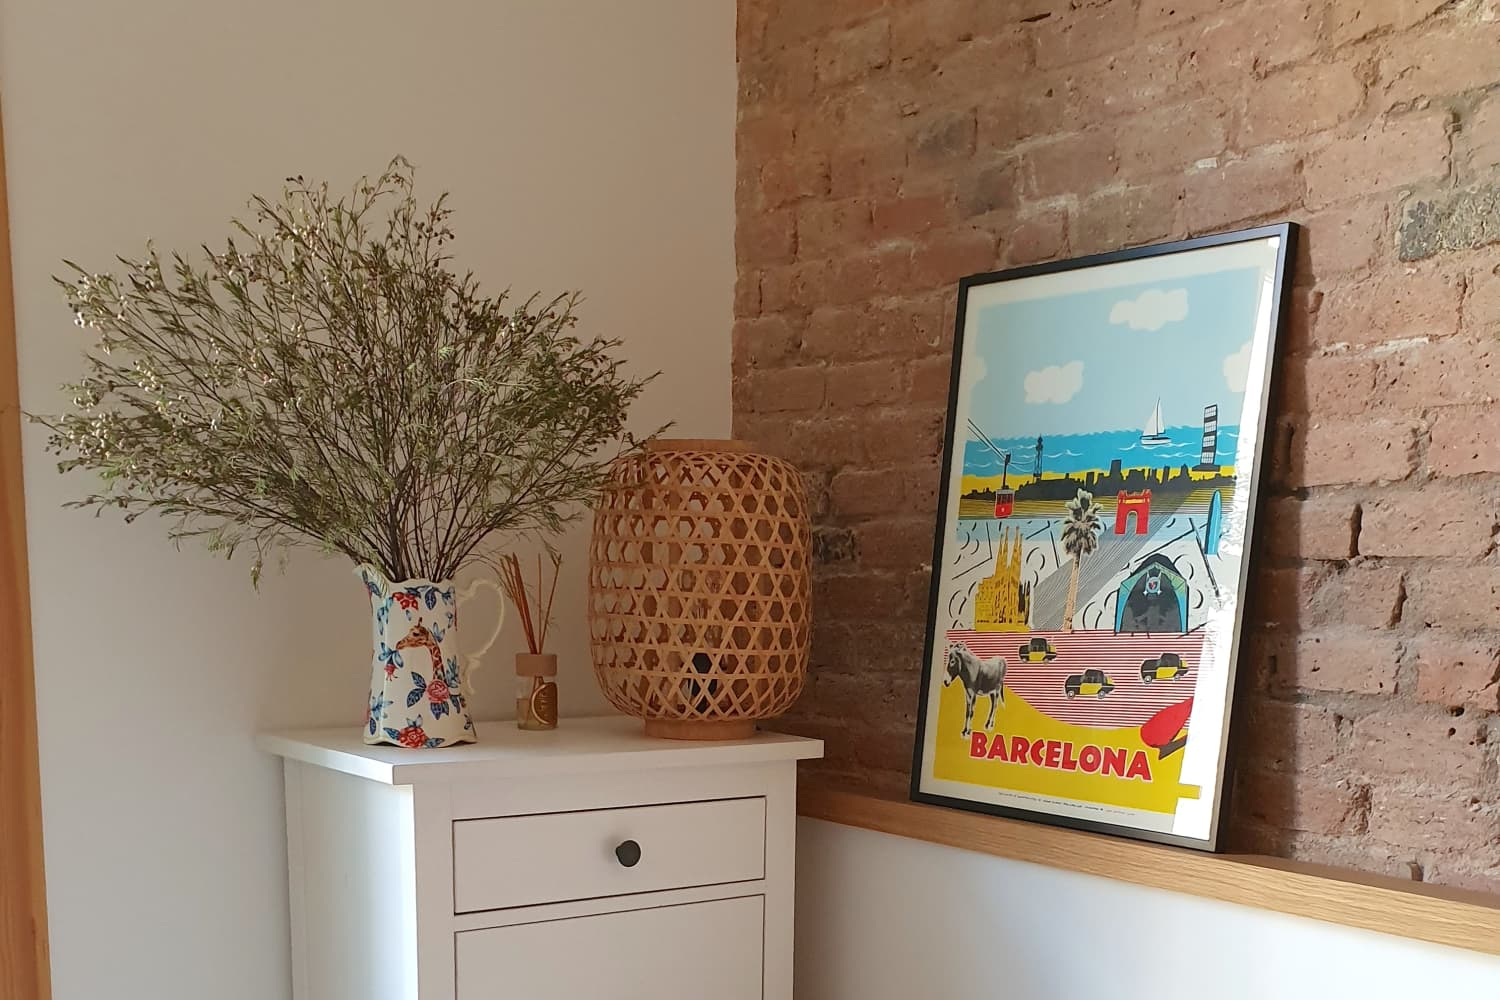 How to Create a Self-Care Corner in Your Home